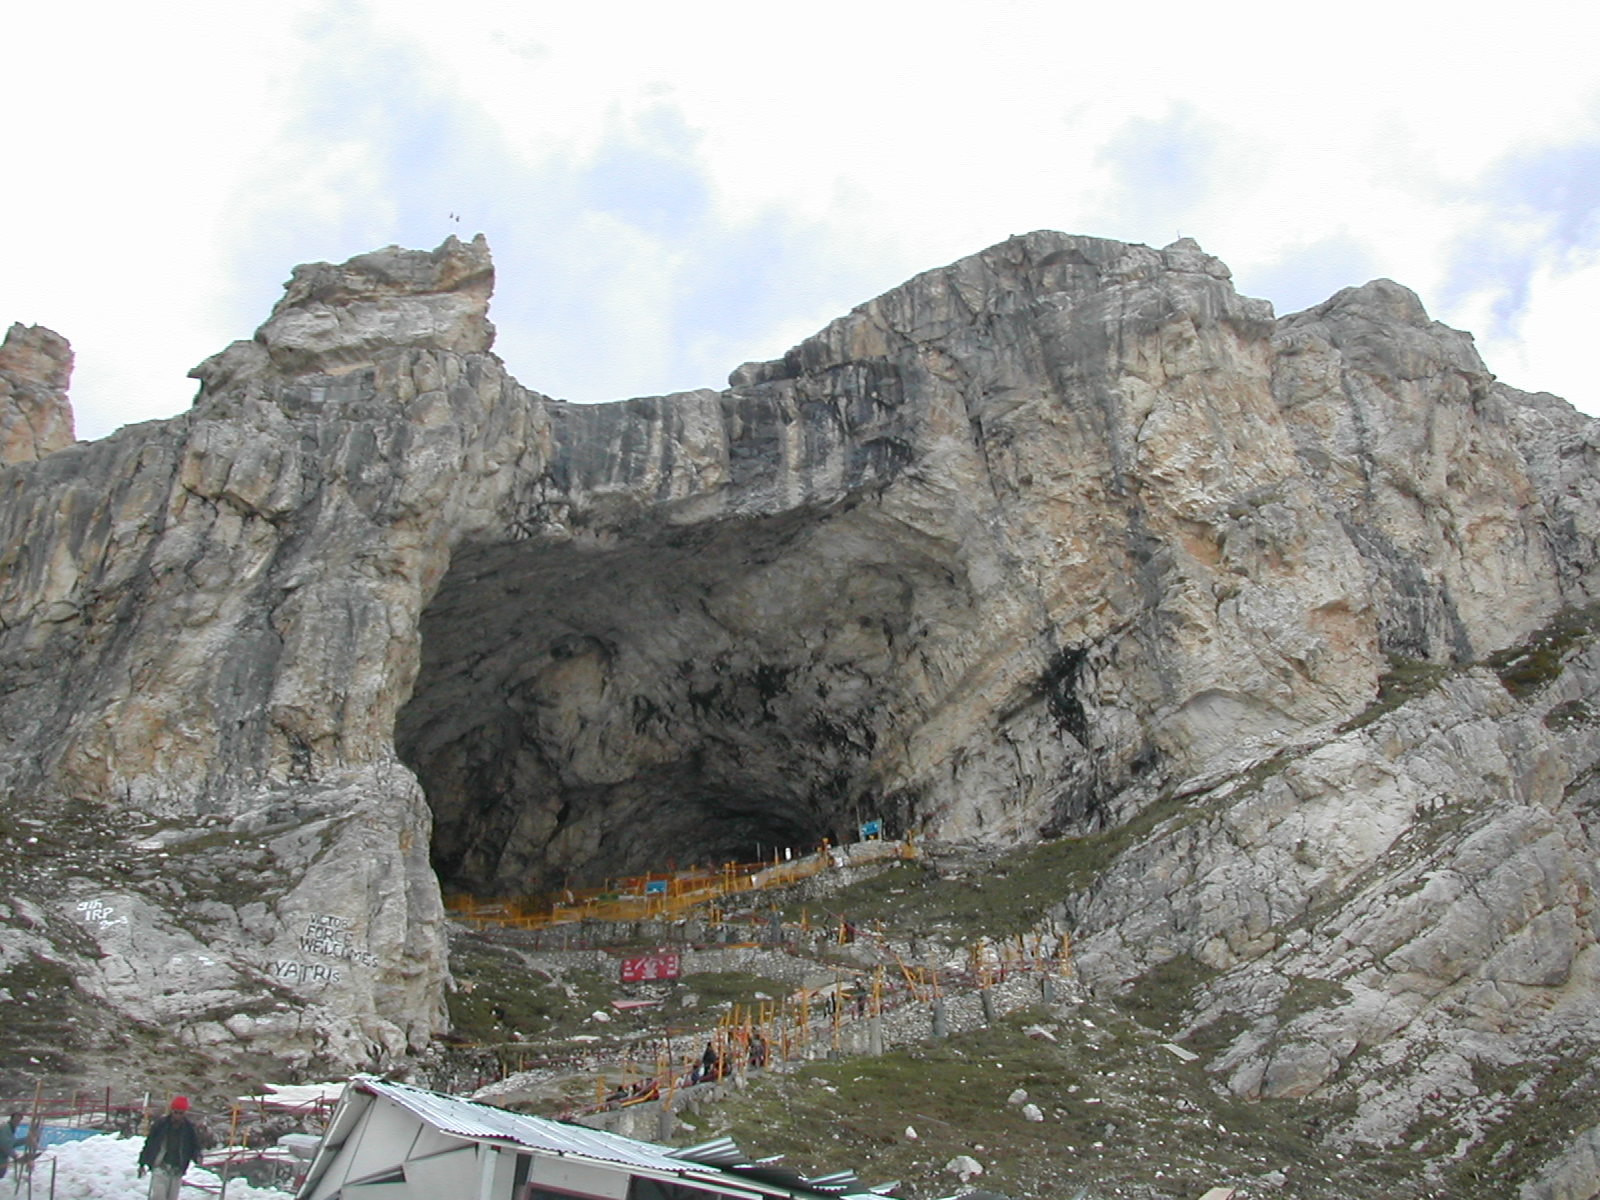 Amarnath Yatra, अमरनाथ यात्रा, Amarnath Yatra 2020, अमरनाथ यात्रा 2020, Amarnath Yatra canceled due to Corona, Covied affected Amarnath yatra, Dharmik Sthal, Religious place in india